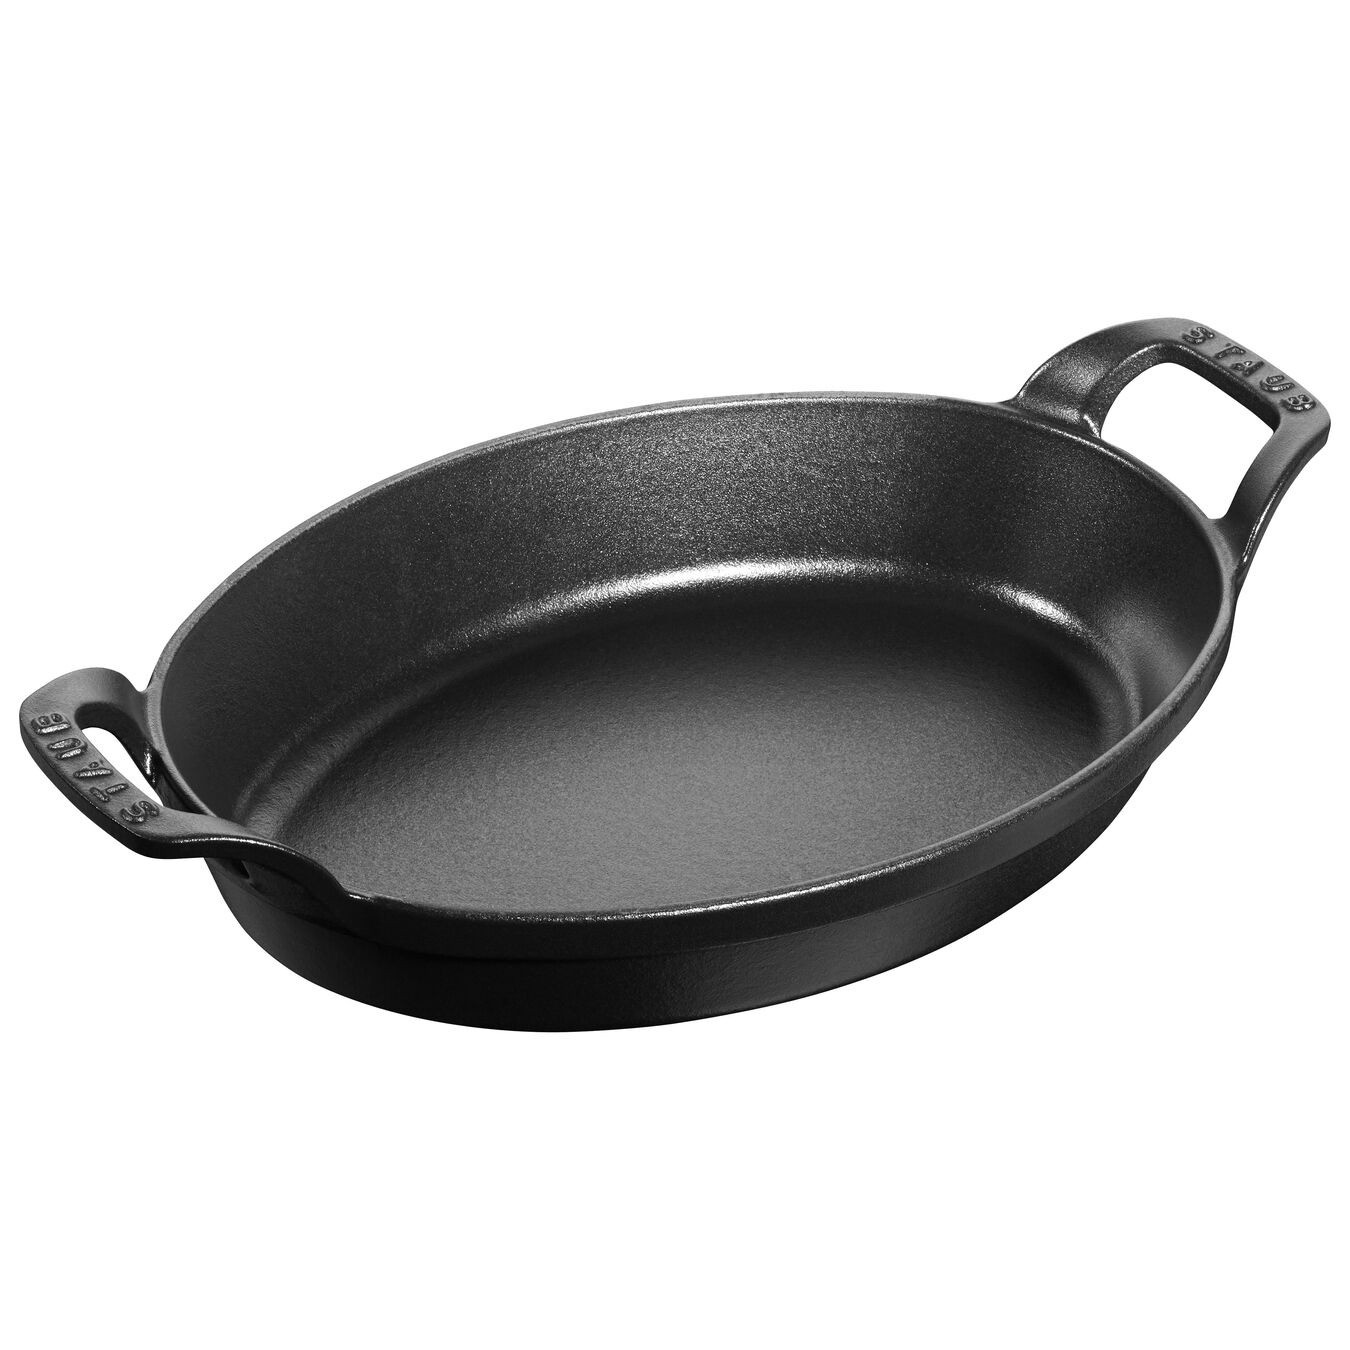 Cast iron oval Oven dish, Black,,large 1